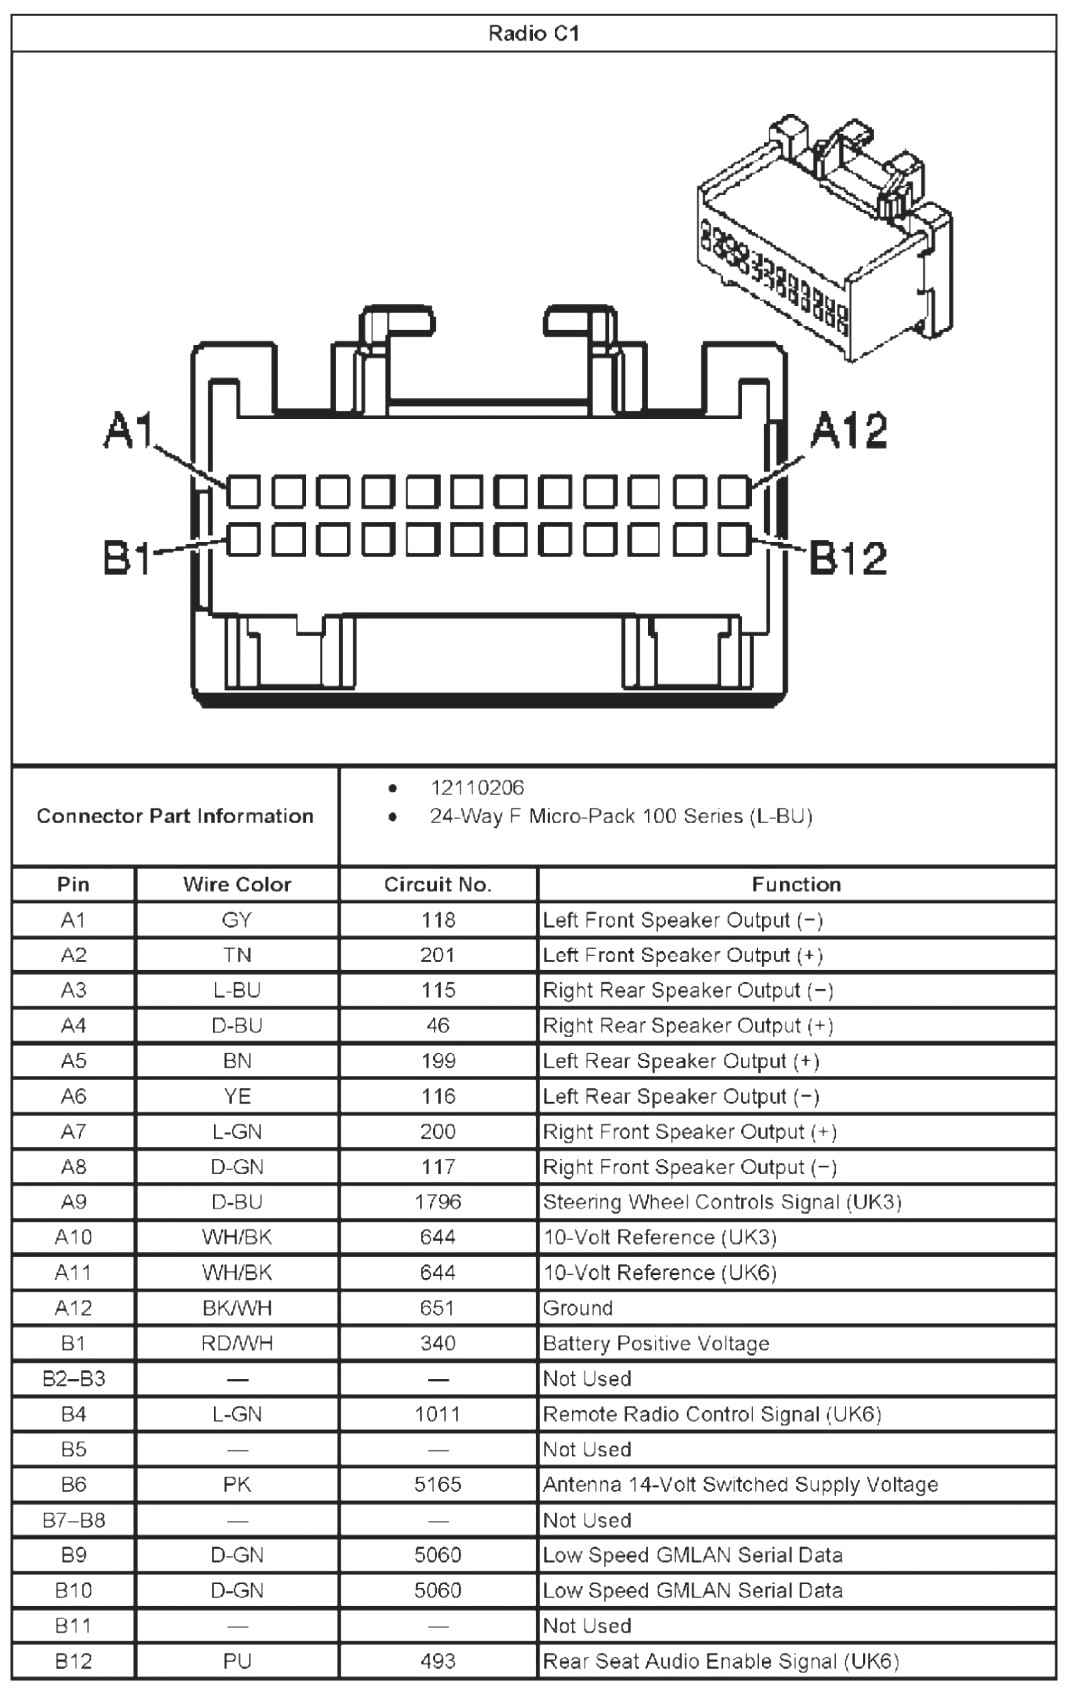 2003 Silverado Stereo Wiring Diagram from static-assets.imageservice.cloud